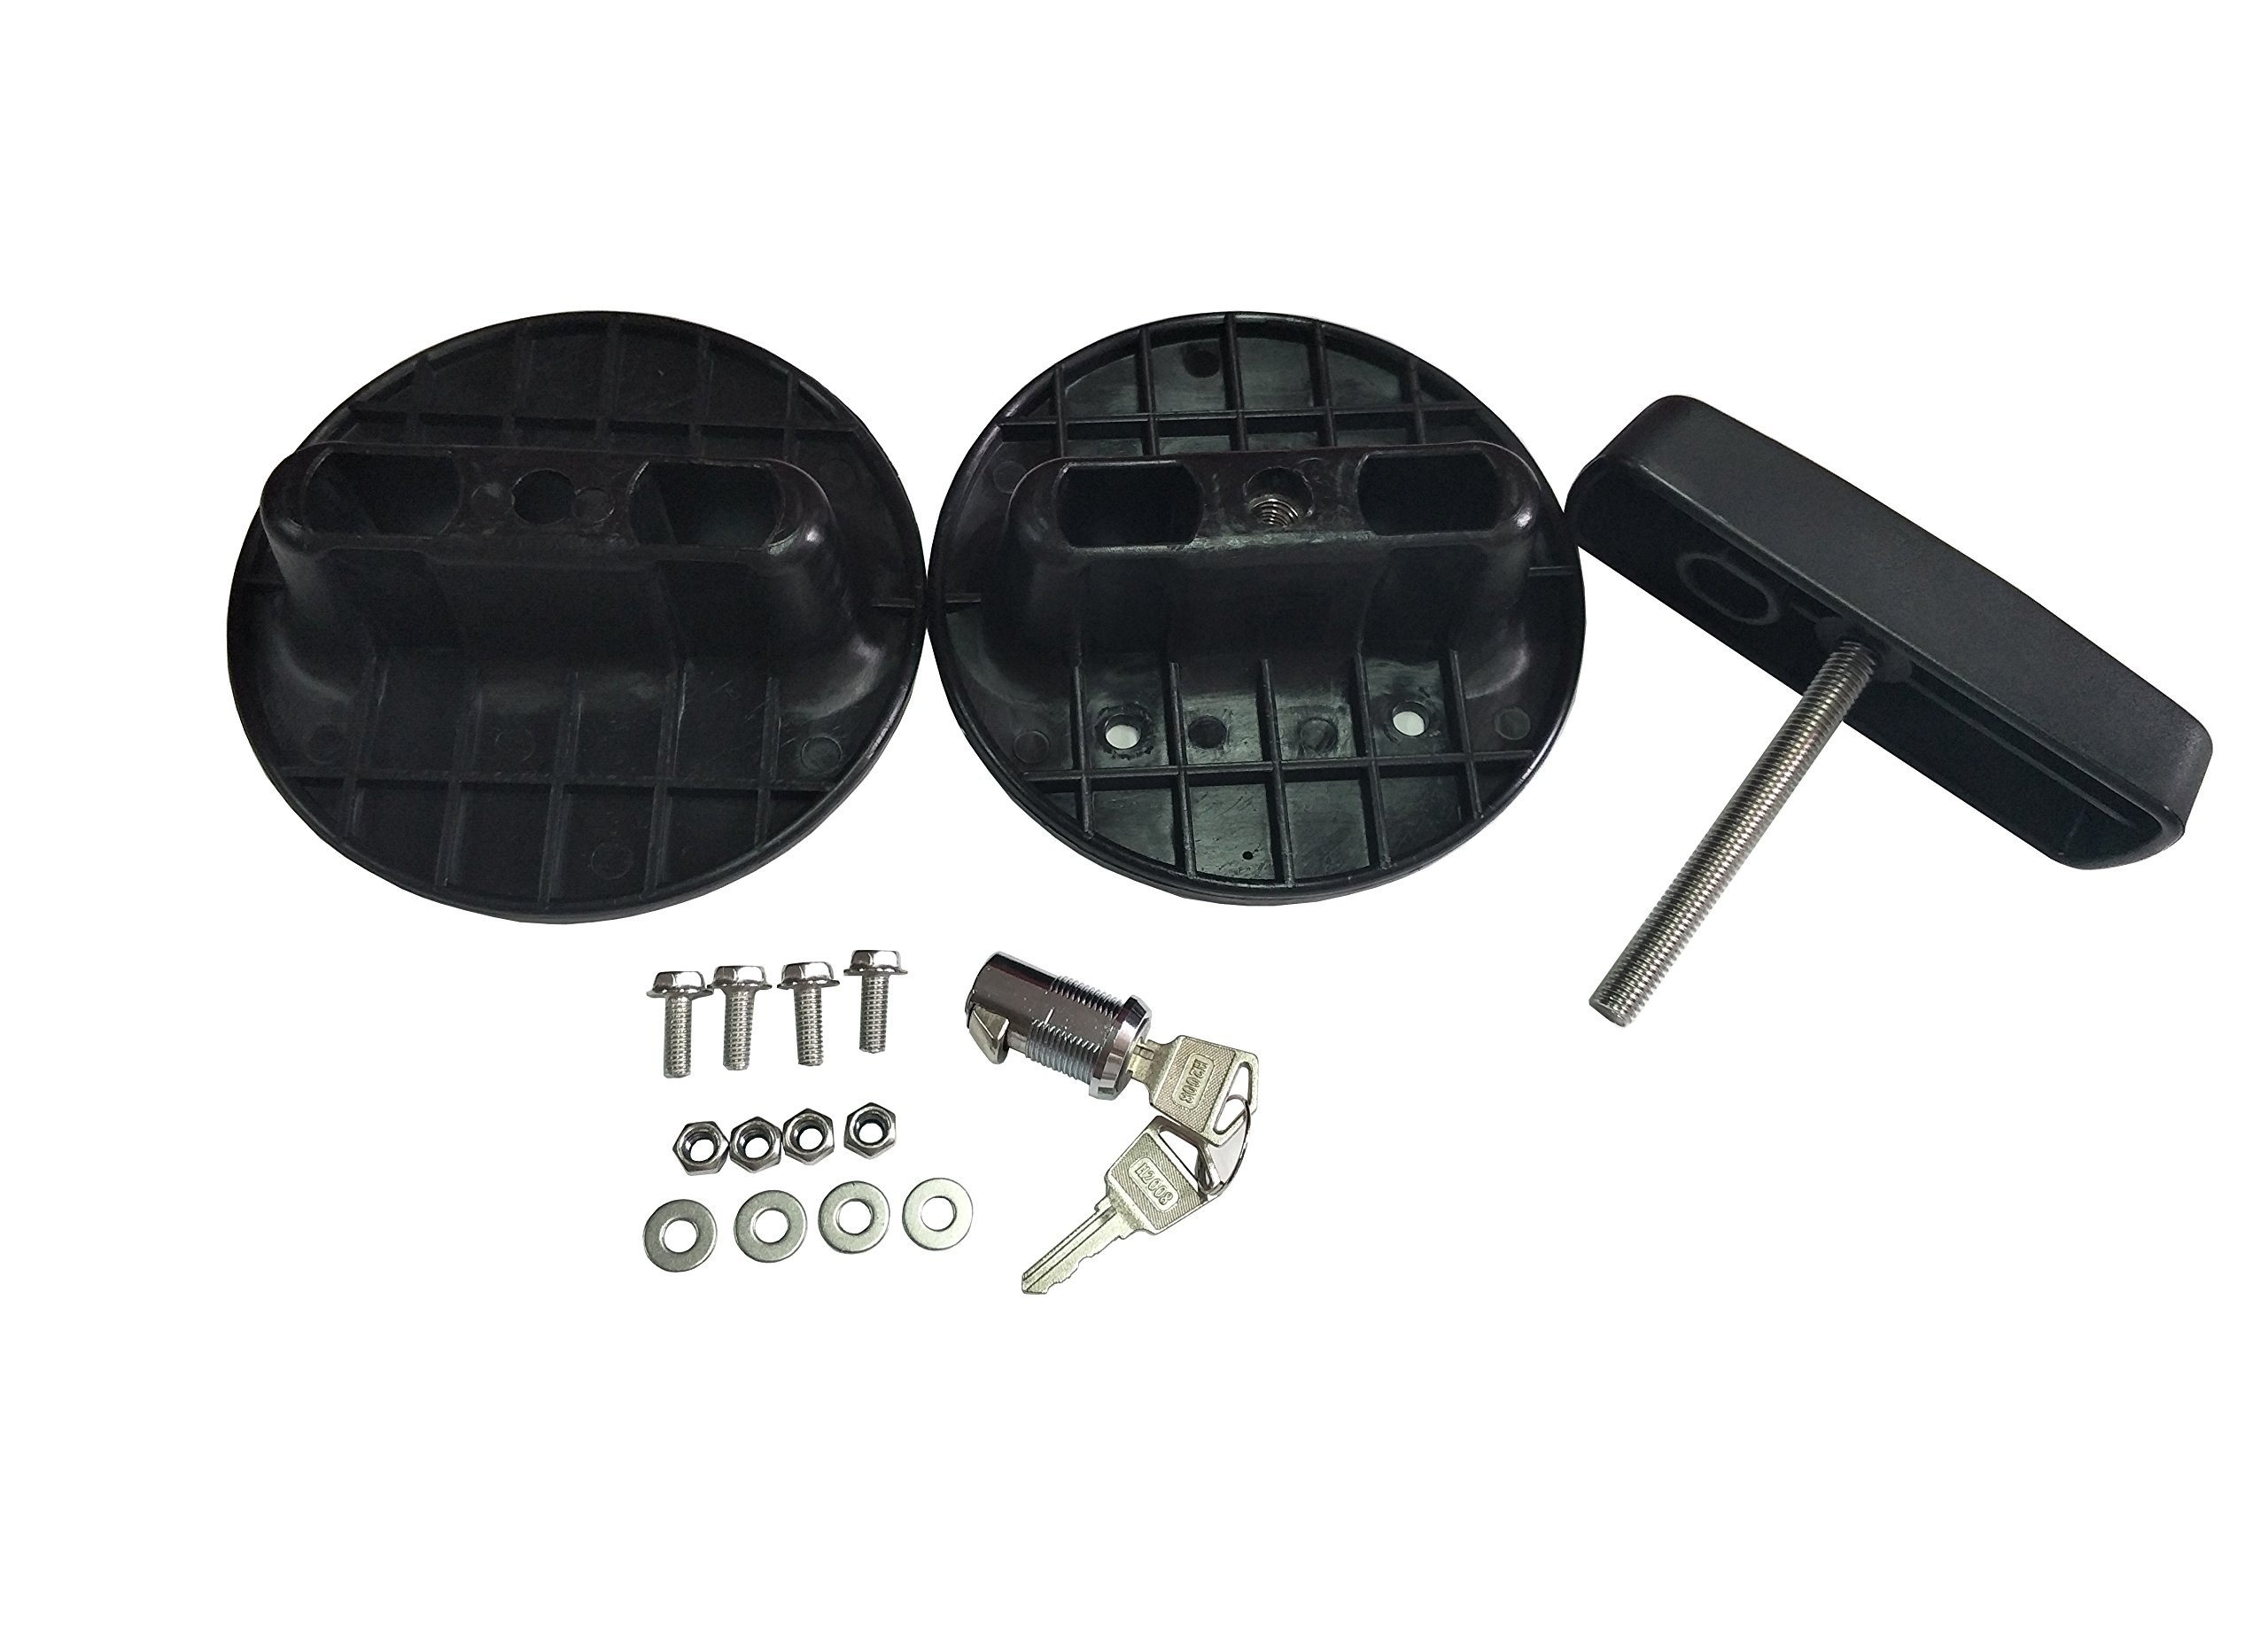 Black Fuel Pak Gasoline Oil Mounting Bracket Kit PM Pack Mount Lock Only Fit for SXMA 5 Gallon Fuel(2 Pack)